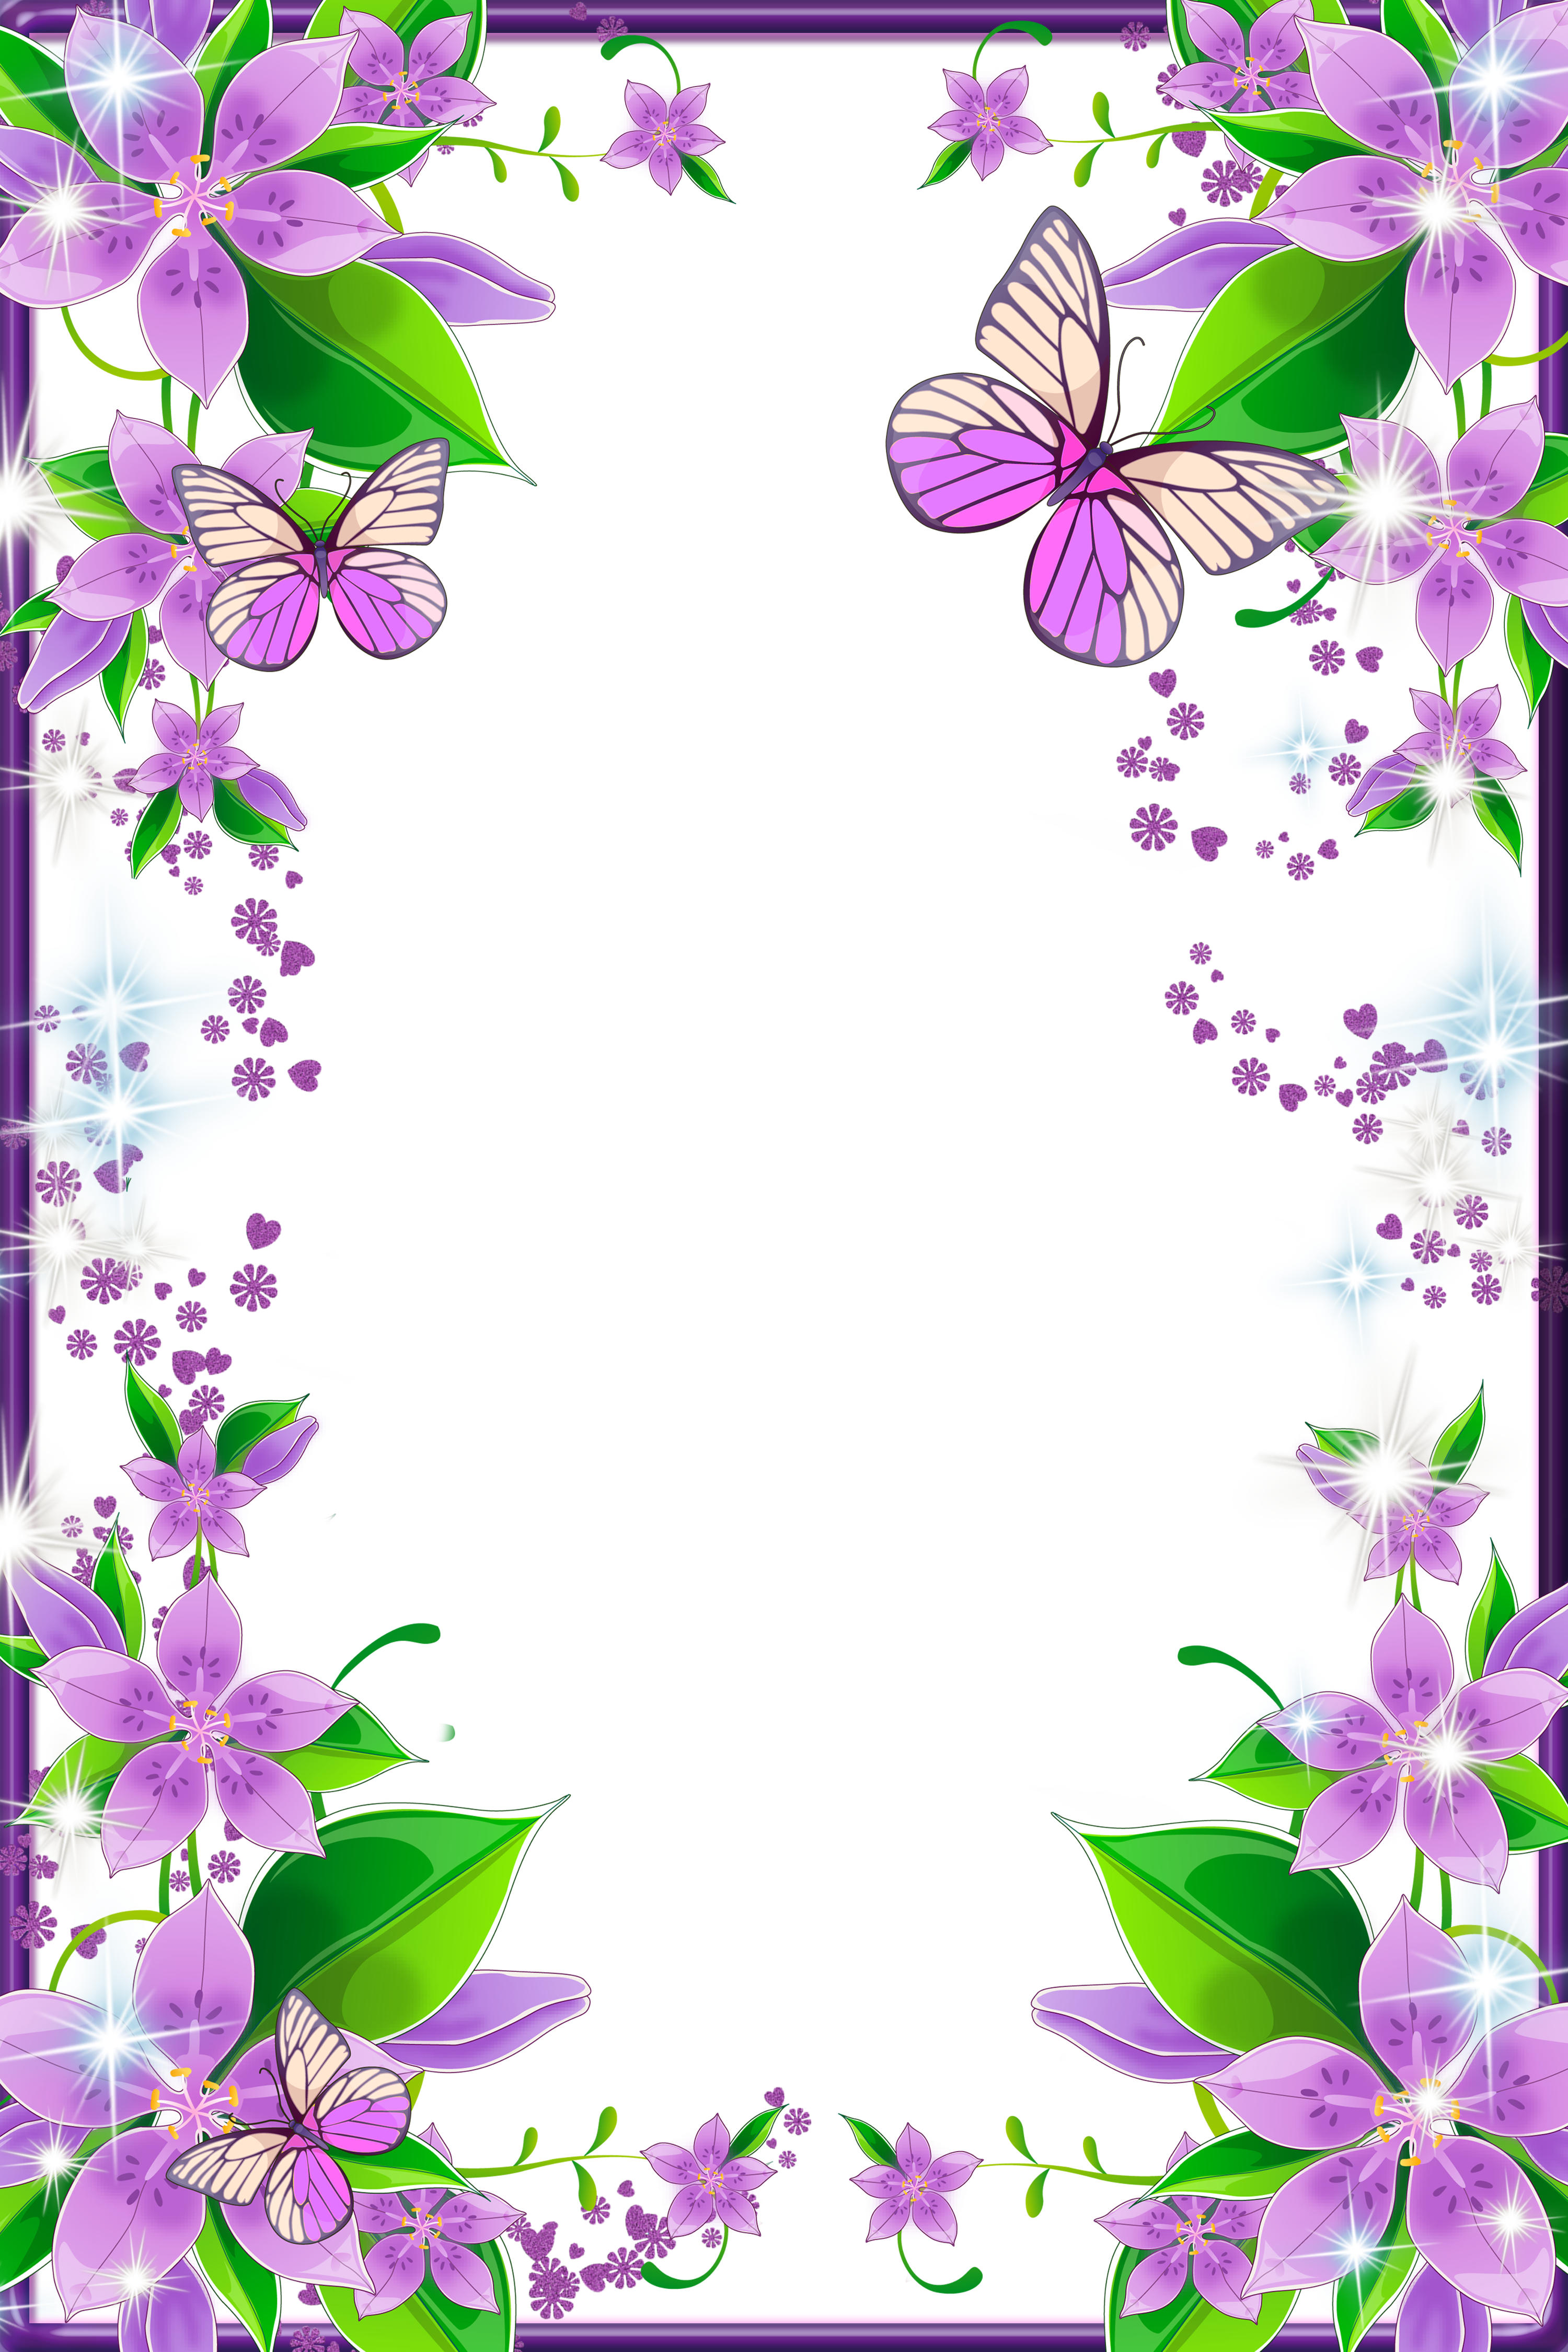 Frame clipart butterfly. Light purple flowers and